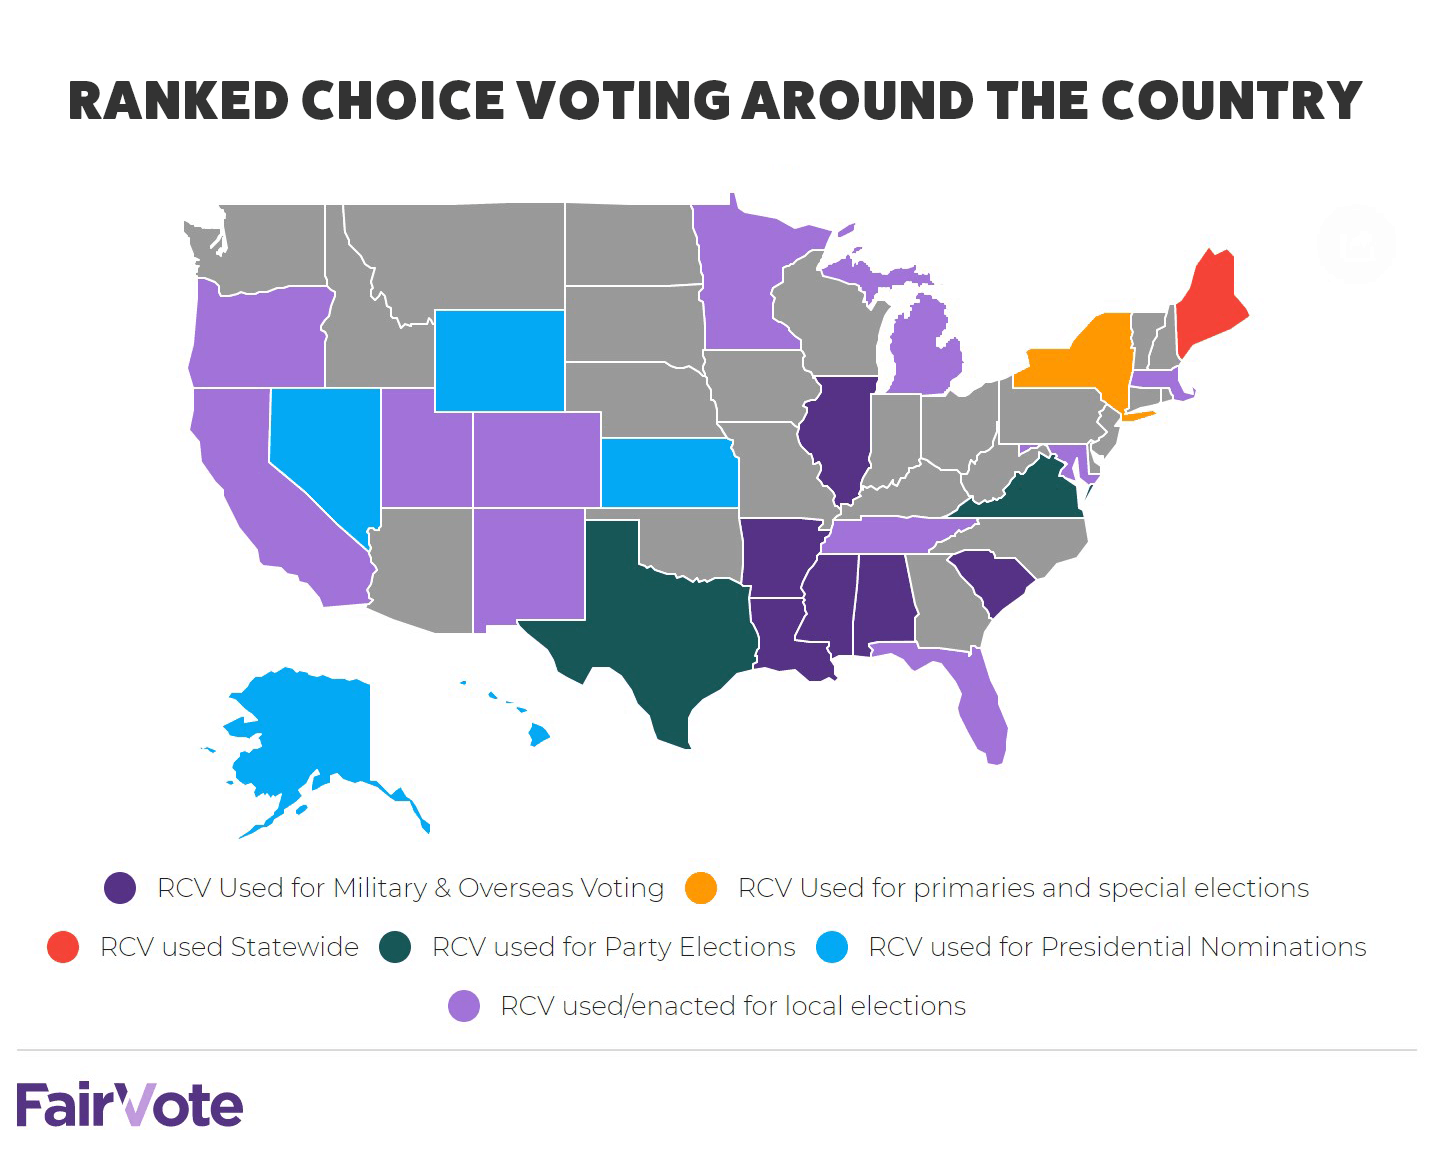 Ranked choice voting around the country